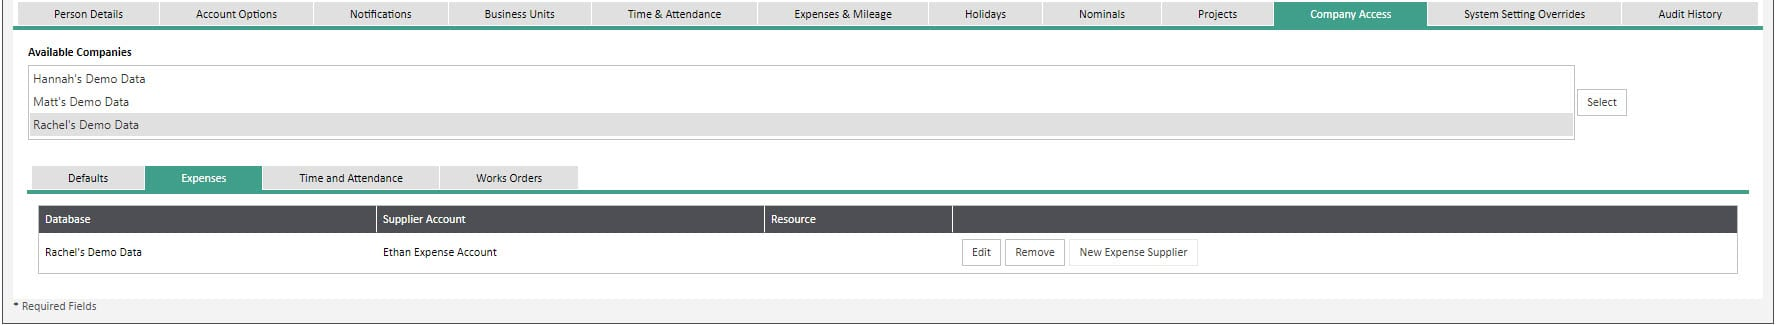 Sicon WAP Expenses Help and User Guide - Expenses HUG Section 22.7 Image 1